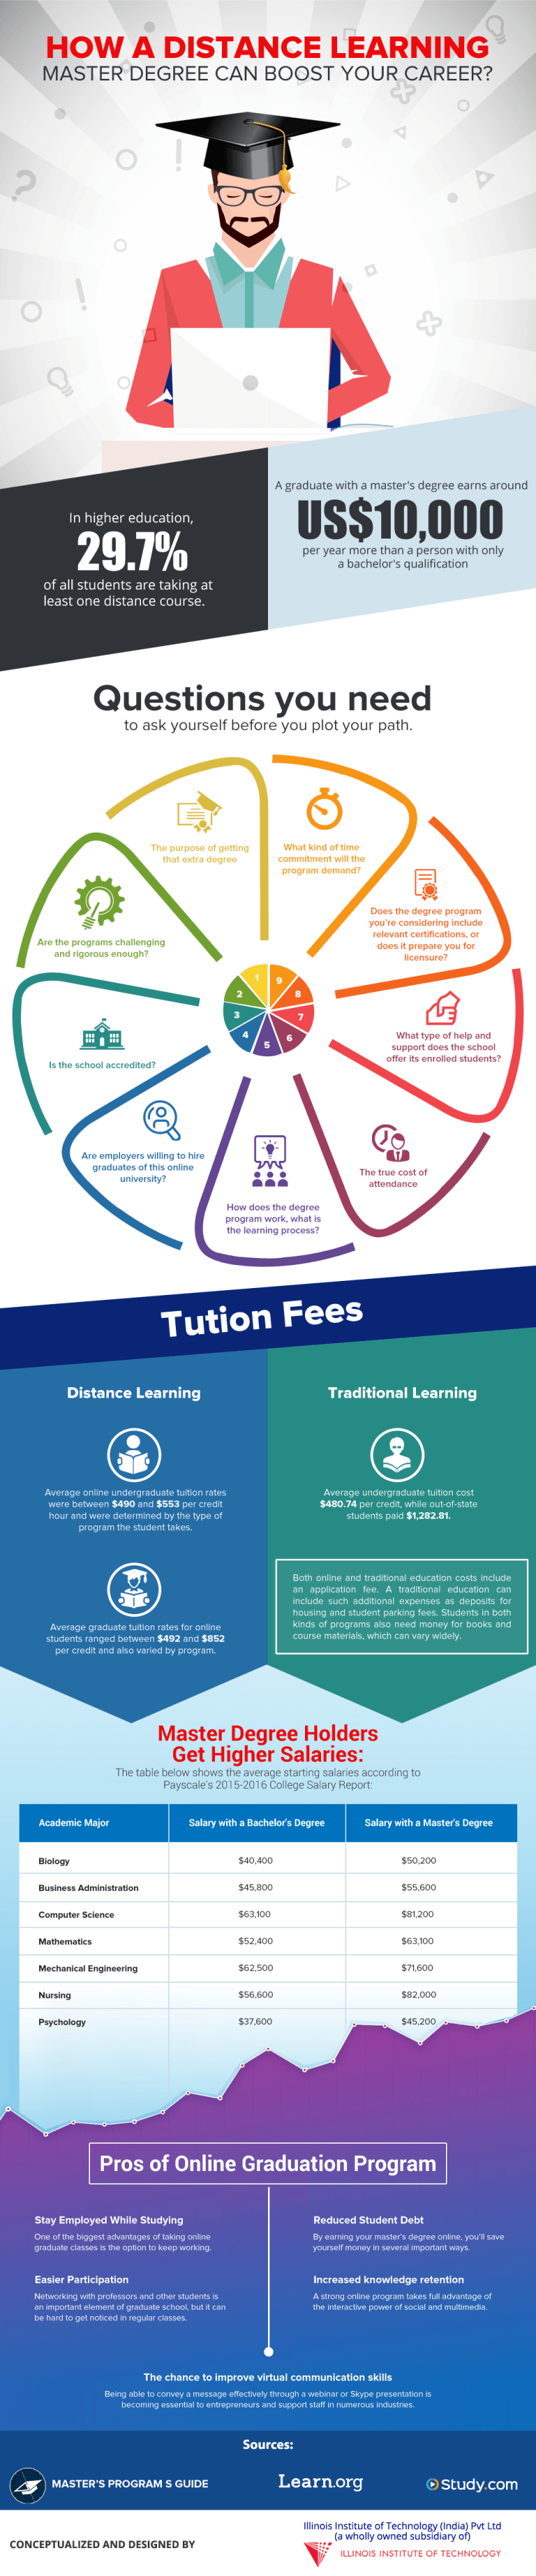 How A Distance Learning Master Degree Can Boost Your Career Infographic